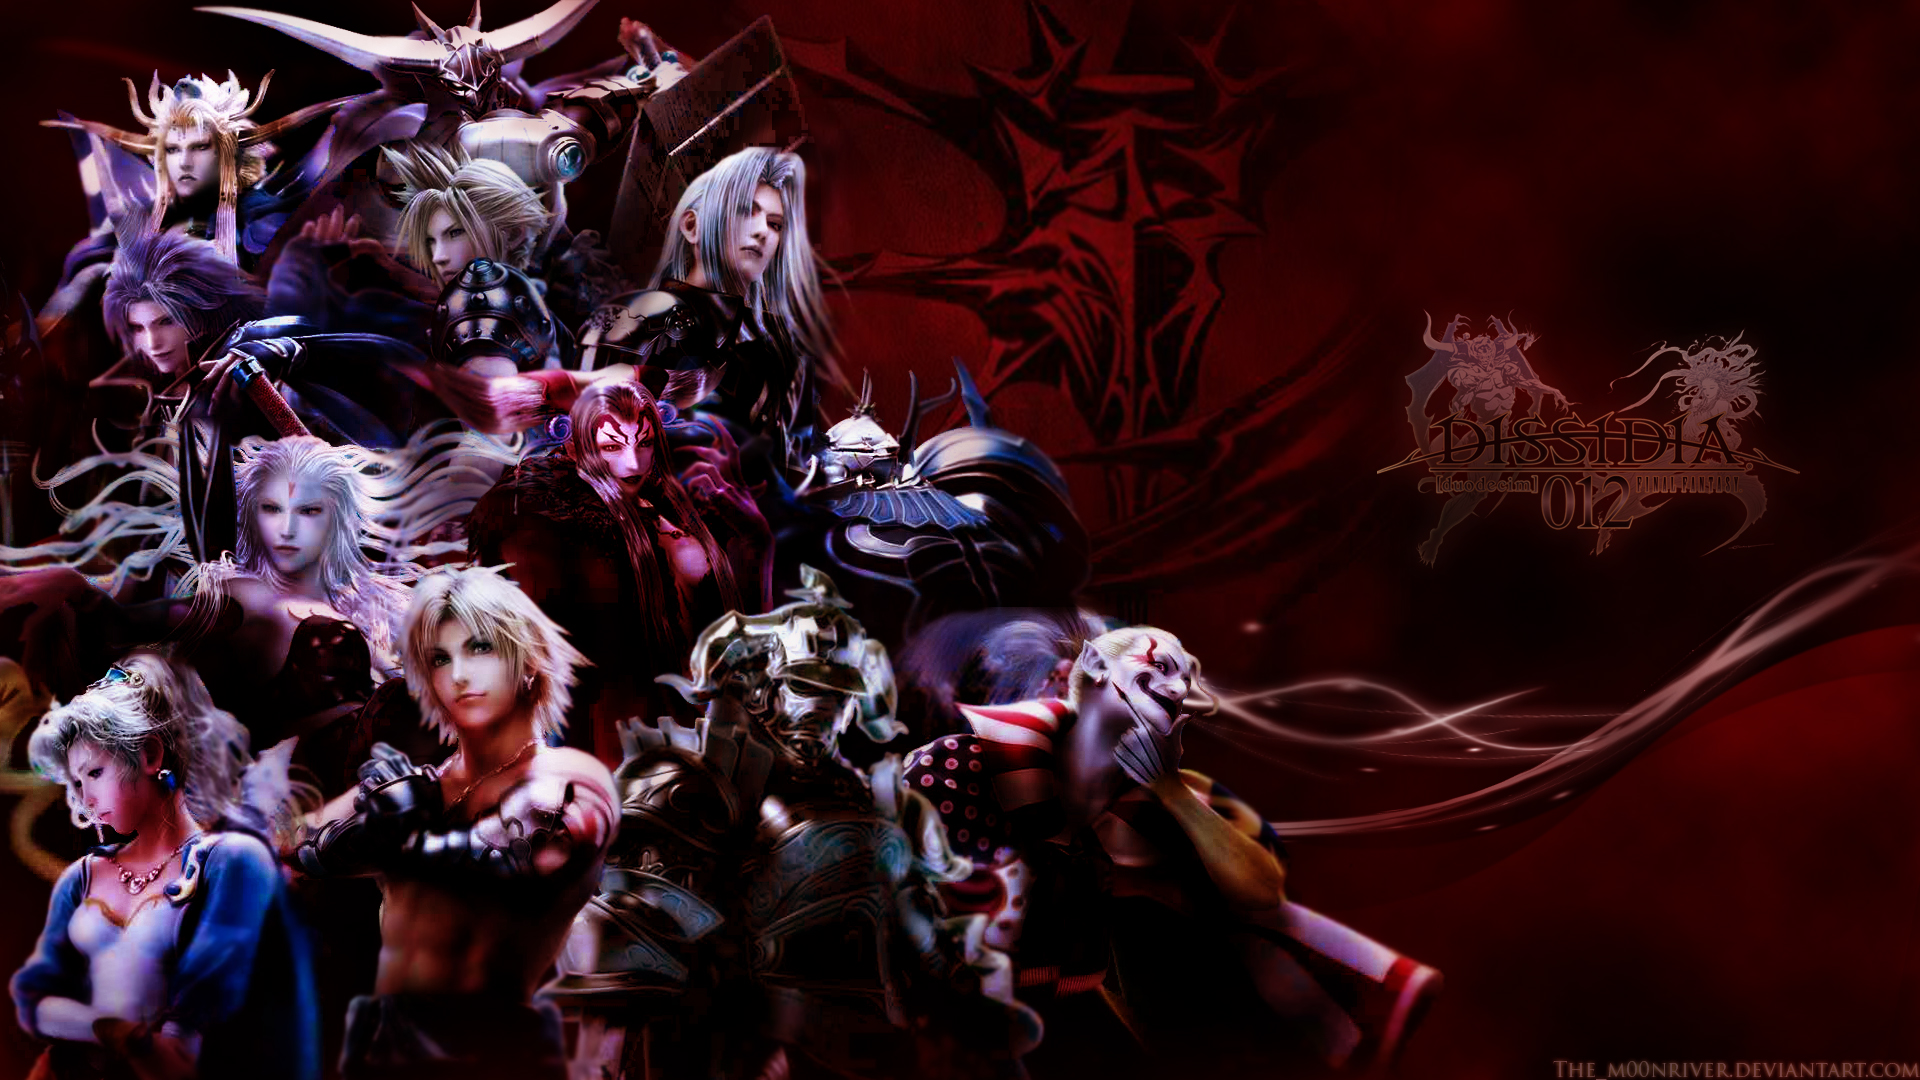 Dissidia 012 - Chaos warriors by The-m00nriver